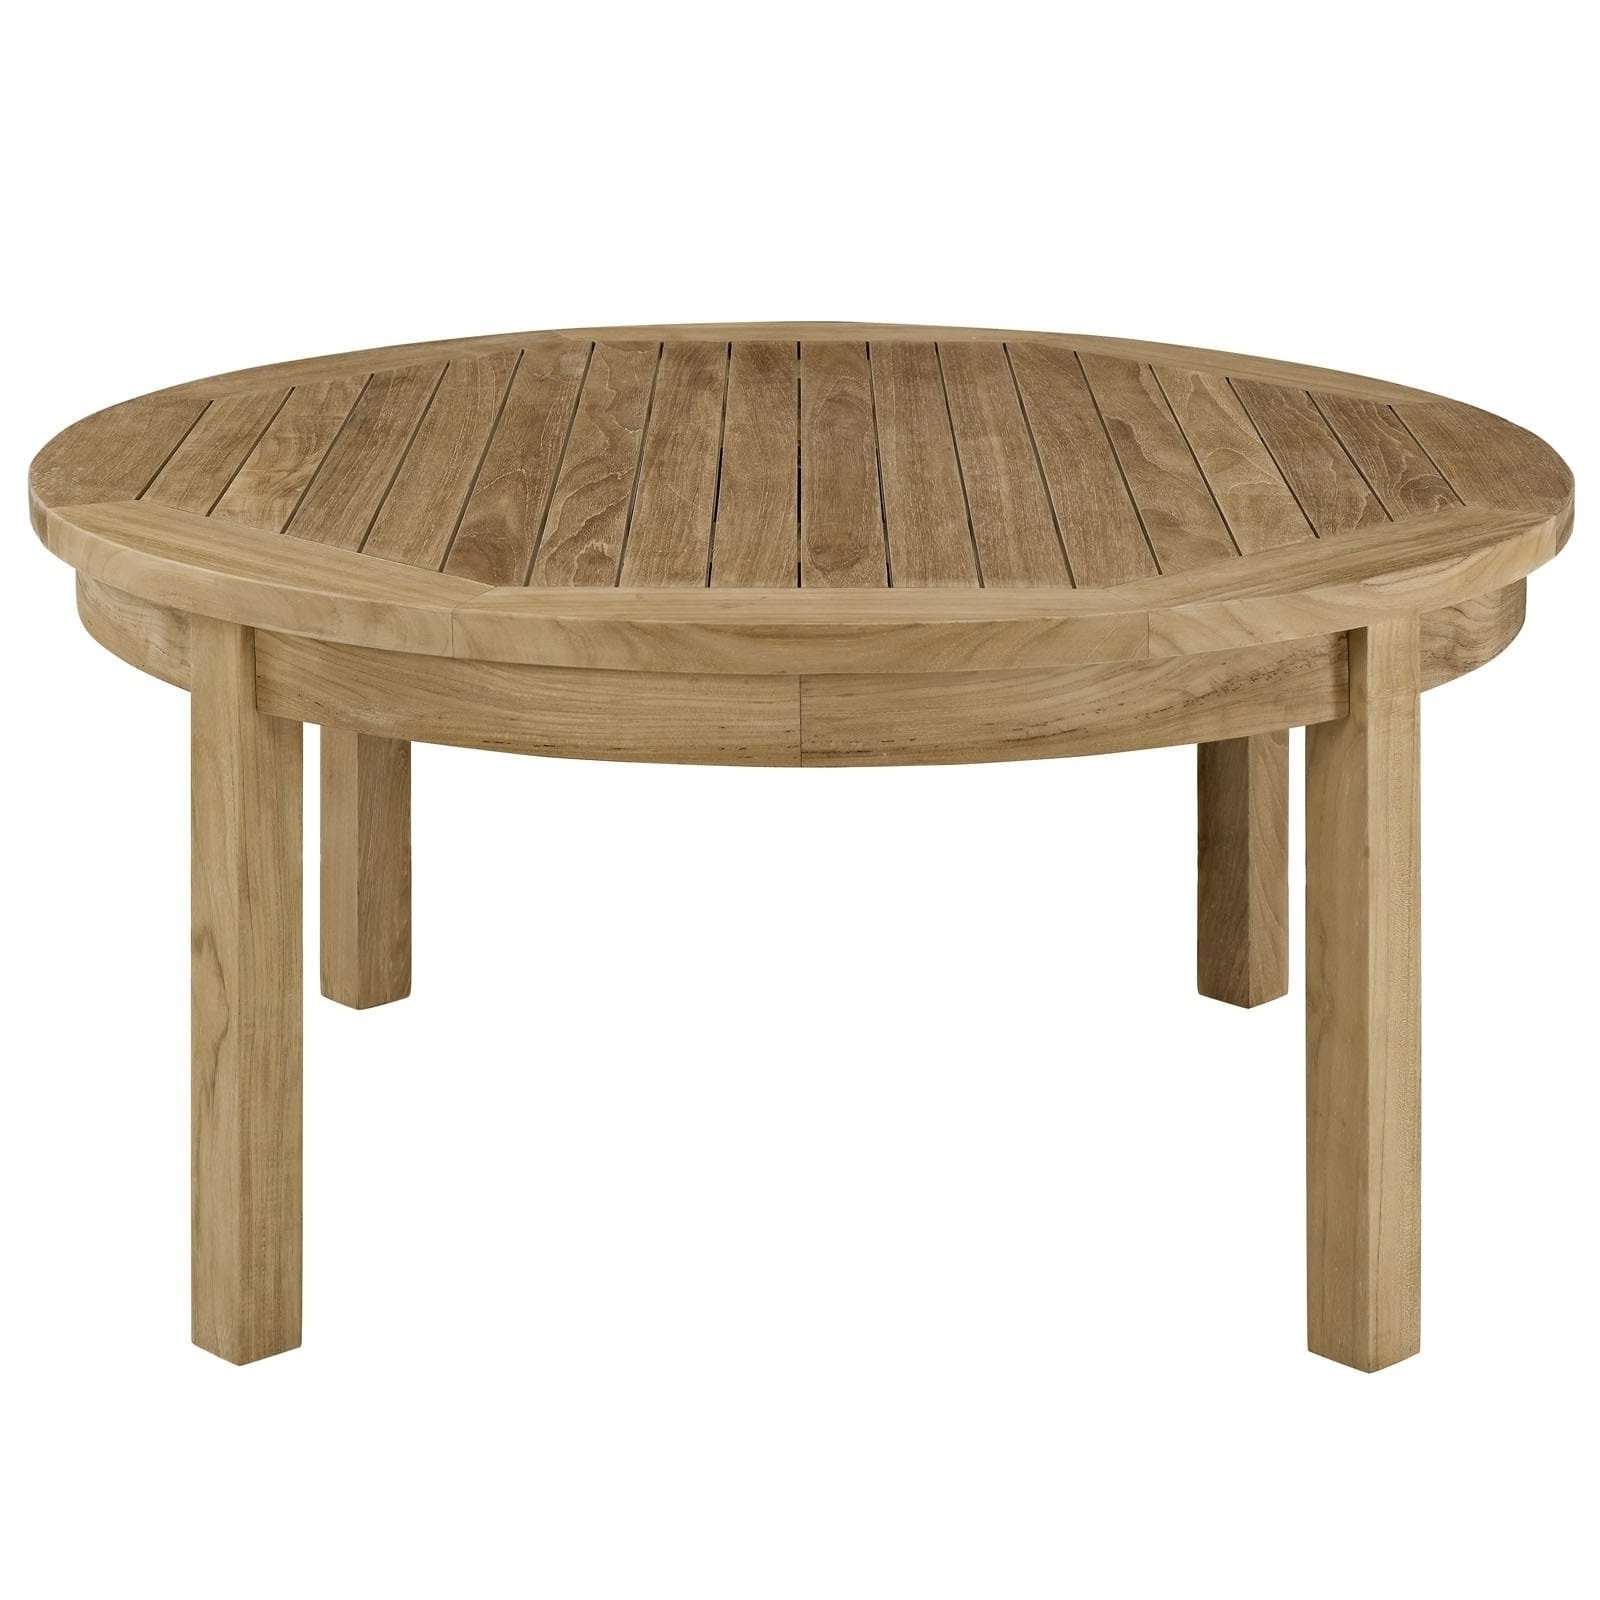 Teak Round Outdoor Table – Table Design Ideas With Regard To Most Recently Released Round Teak Coffee Tables (View 18 of 20)